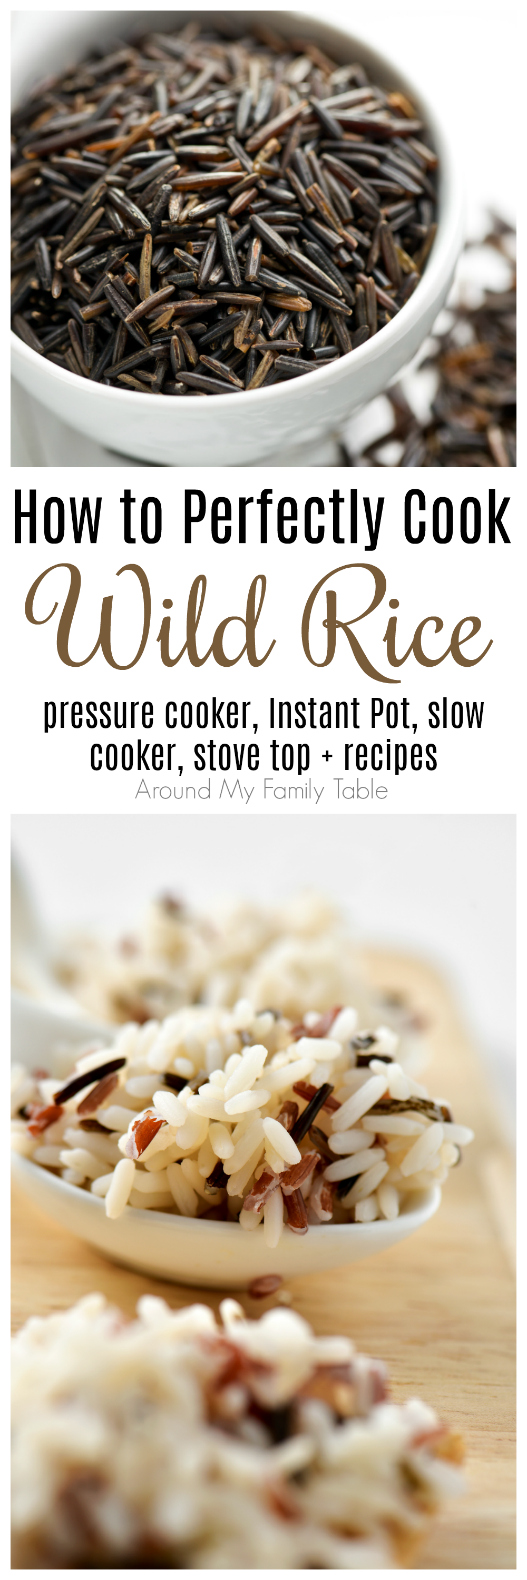 Everything you've wanted to know about wild rice.  This How to Cook: Wild Rice guide features instructions on using a pressure cooker, instant pot, slow cooker, and stovetop for cooking wild rice, plus there are a few delicious recipes to try as well.